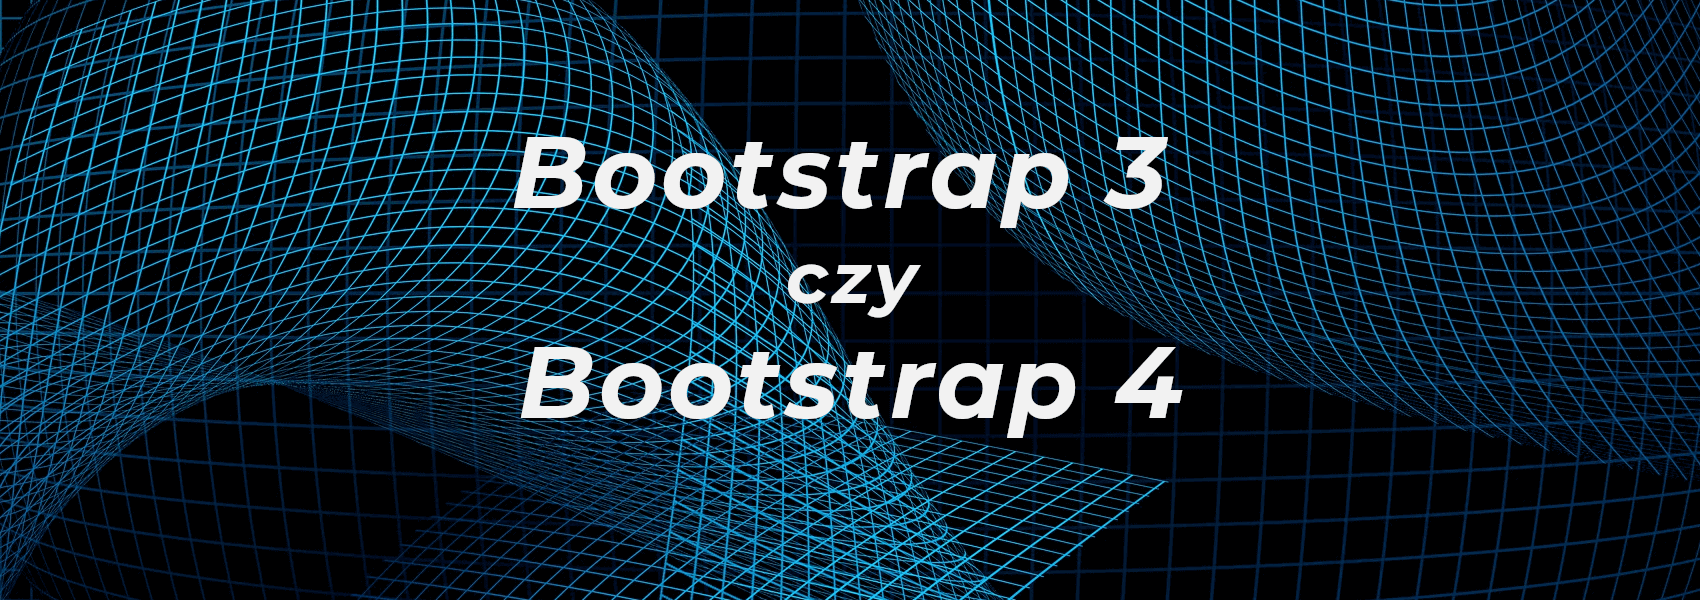 bootstrap 3 czy bootstrap 4